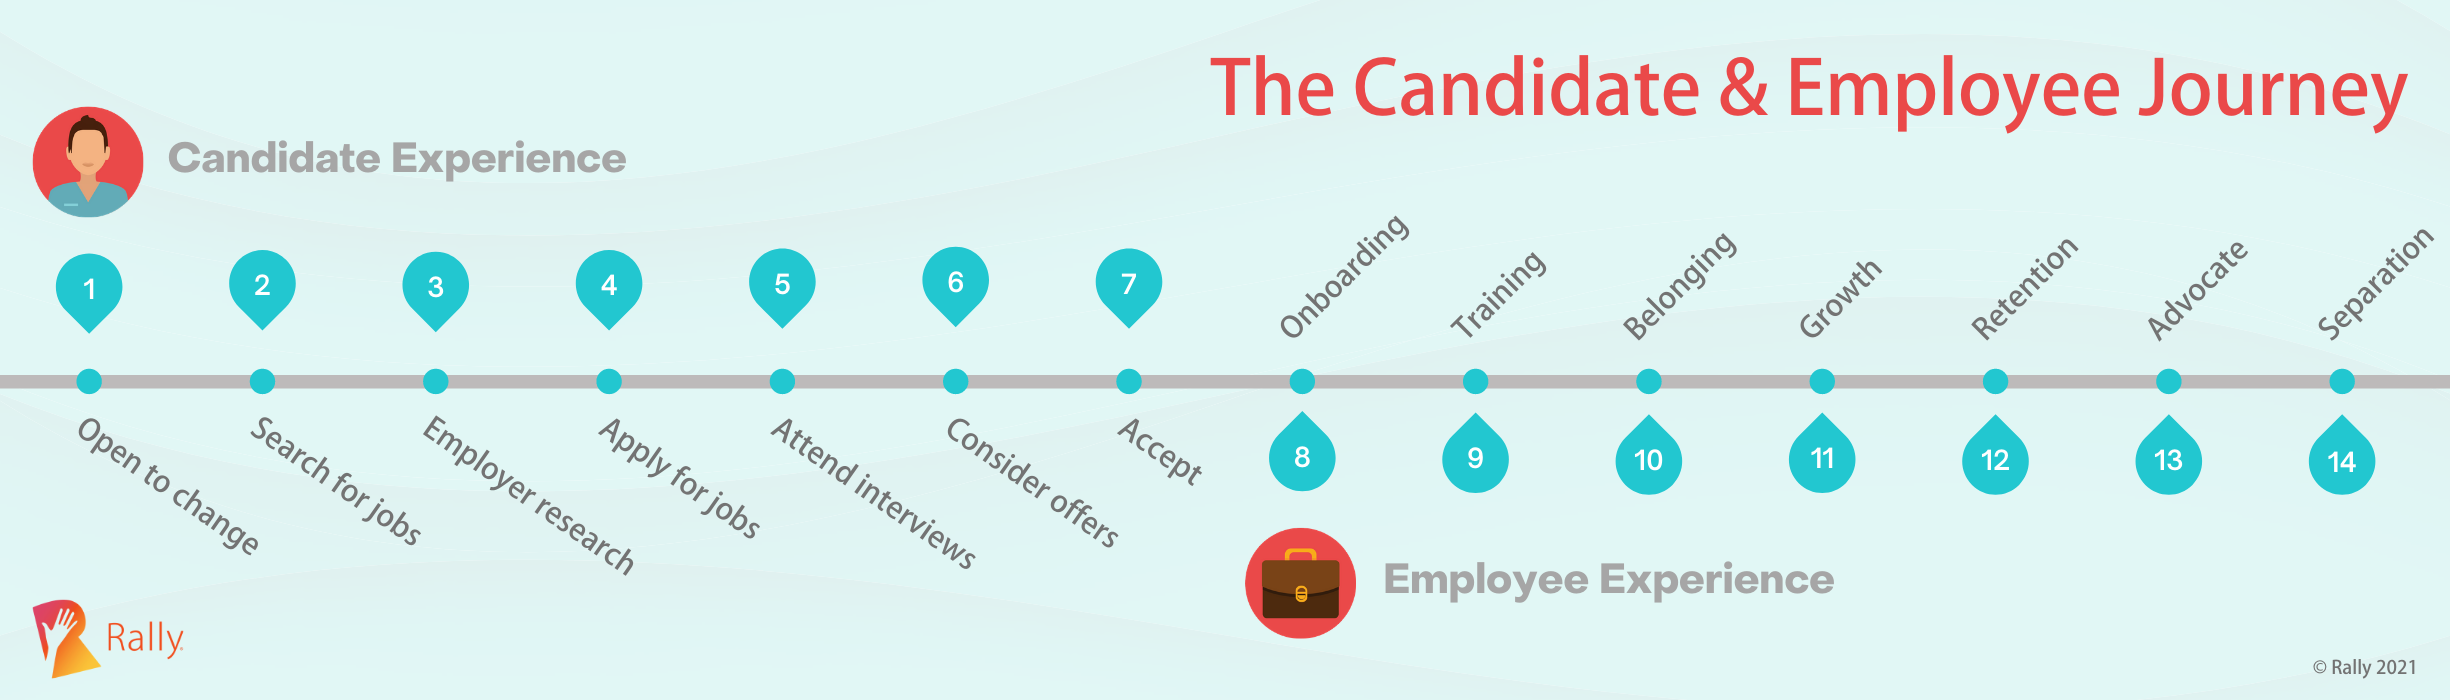 The candidate and employee journey